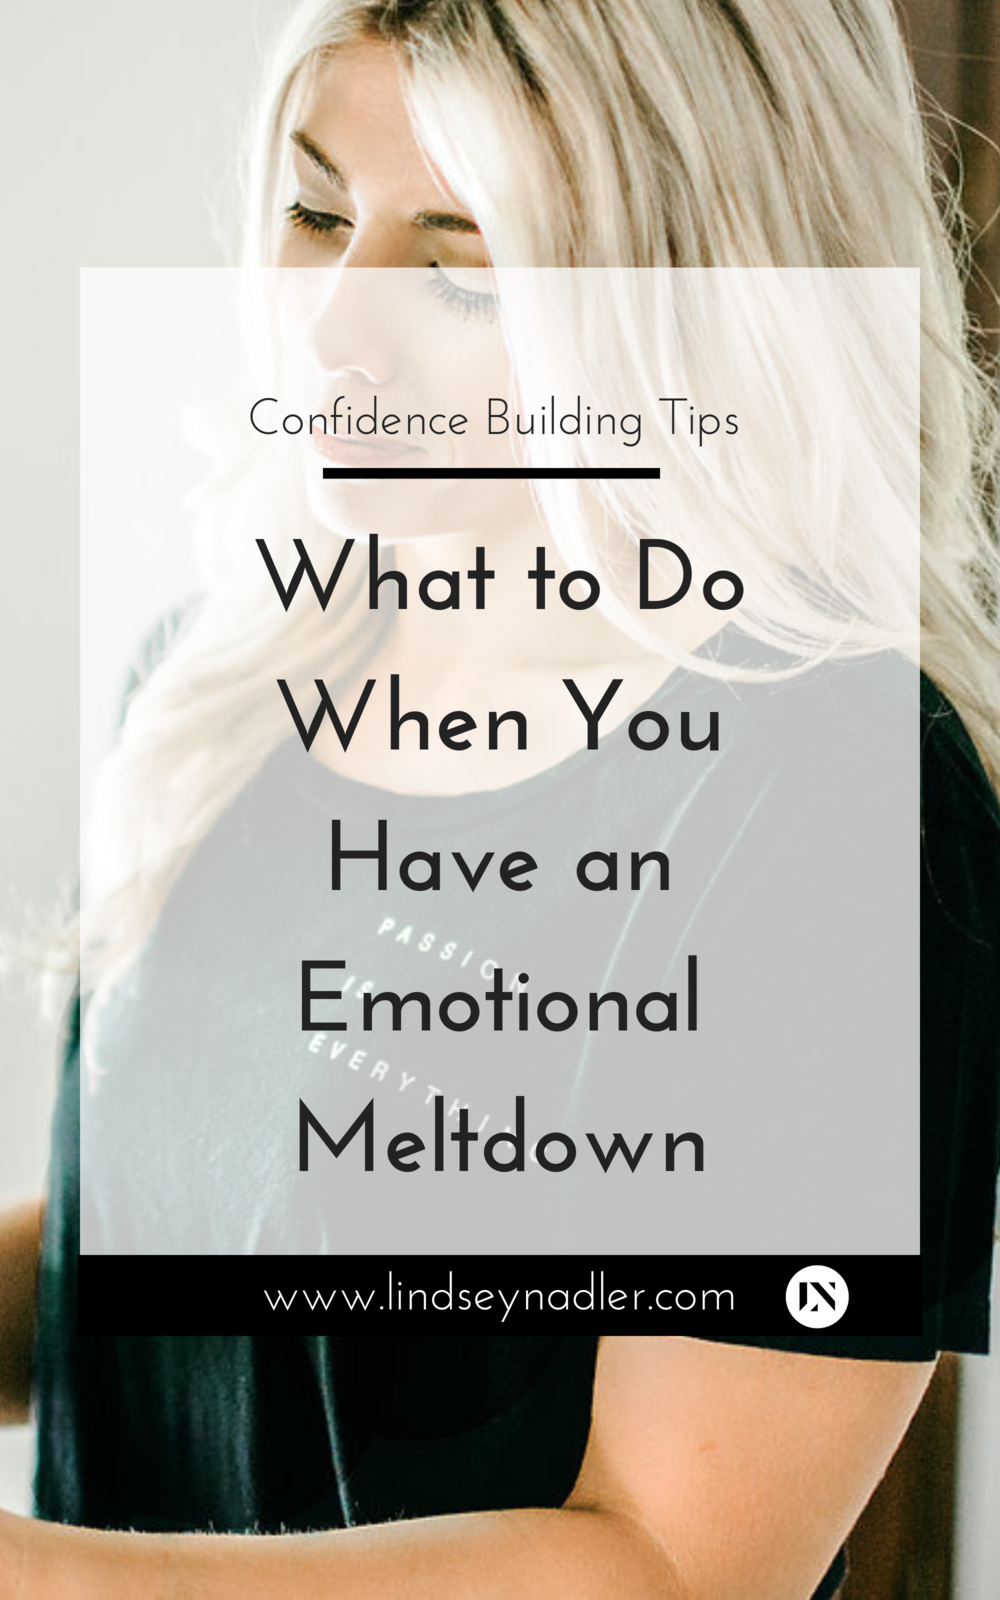 What to Do When You Have an Emotional Meltdown